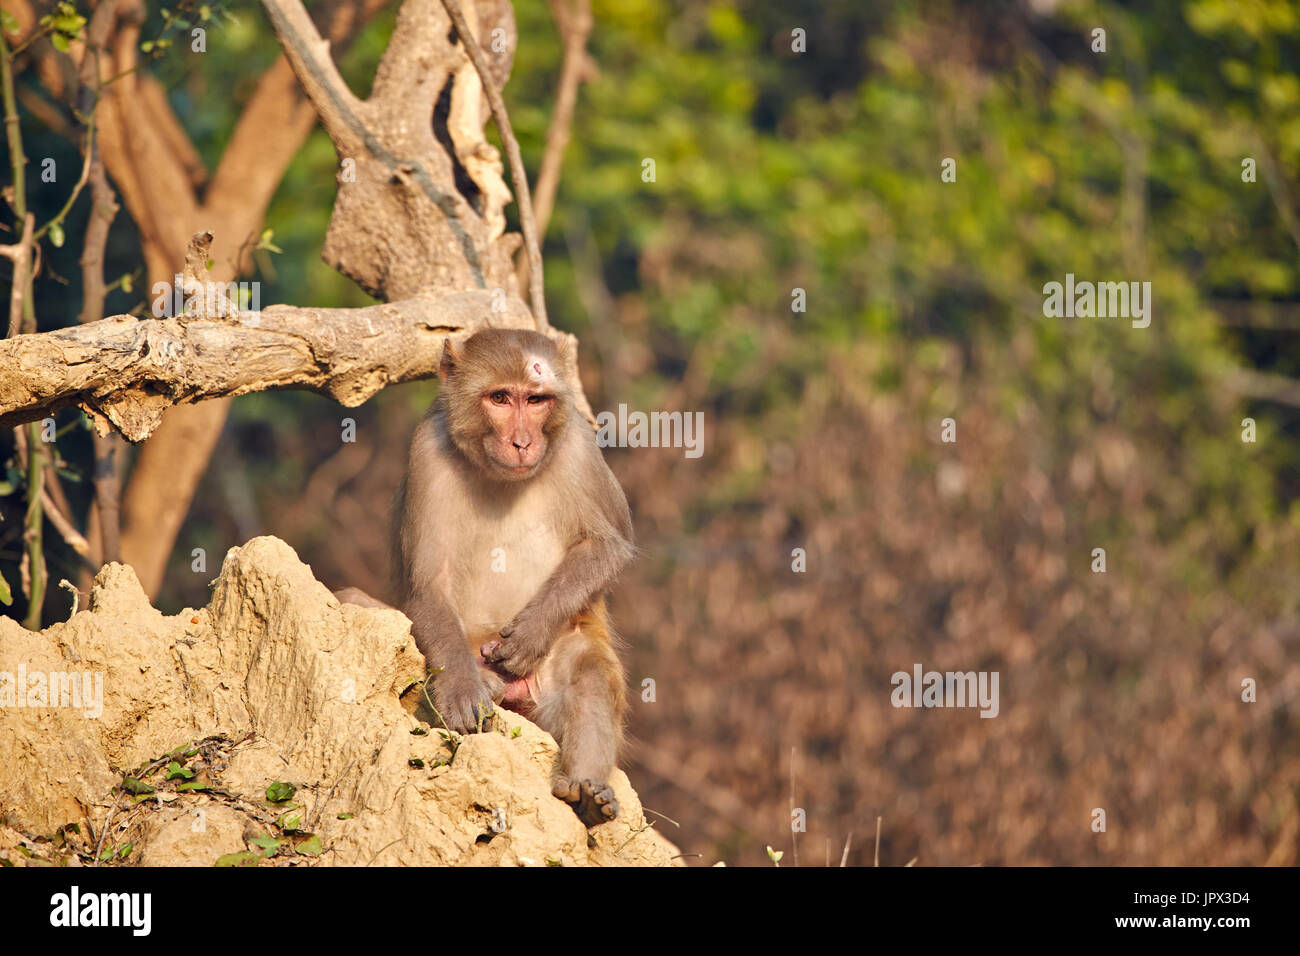 Rhesus macaque on ground - Keoladeo Rajasthan India Stock Photo